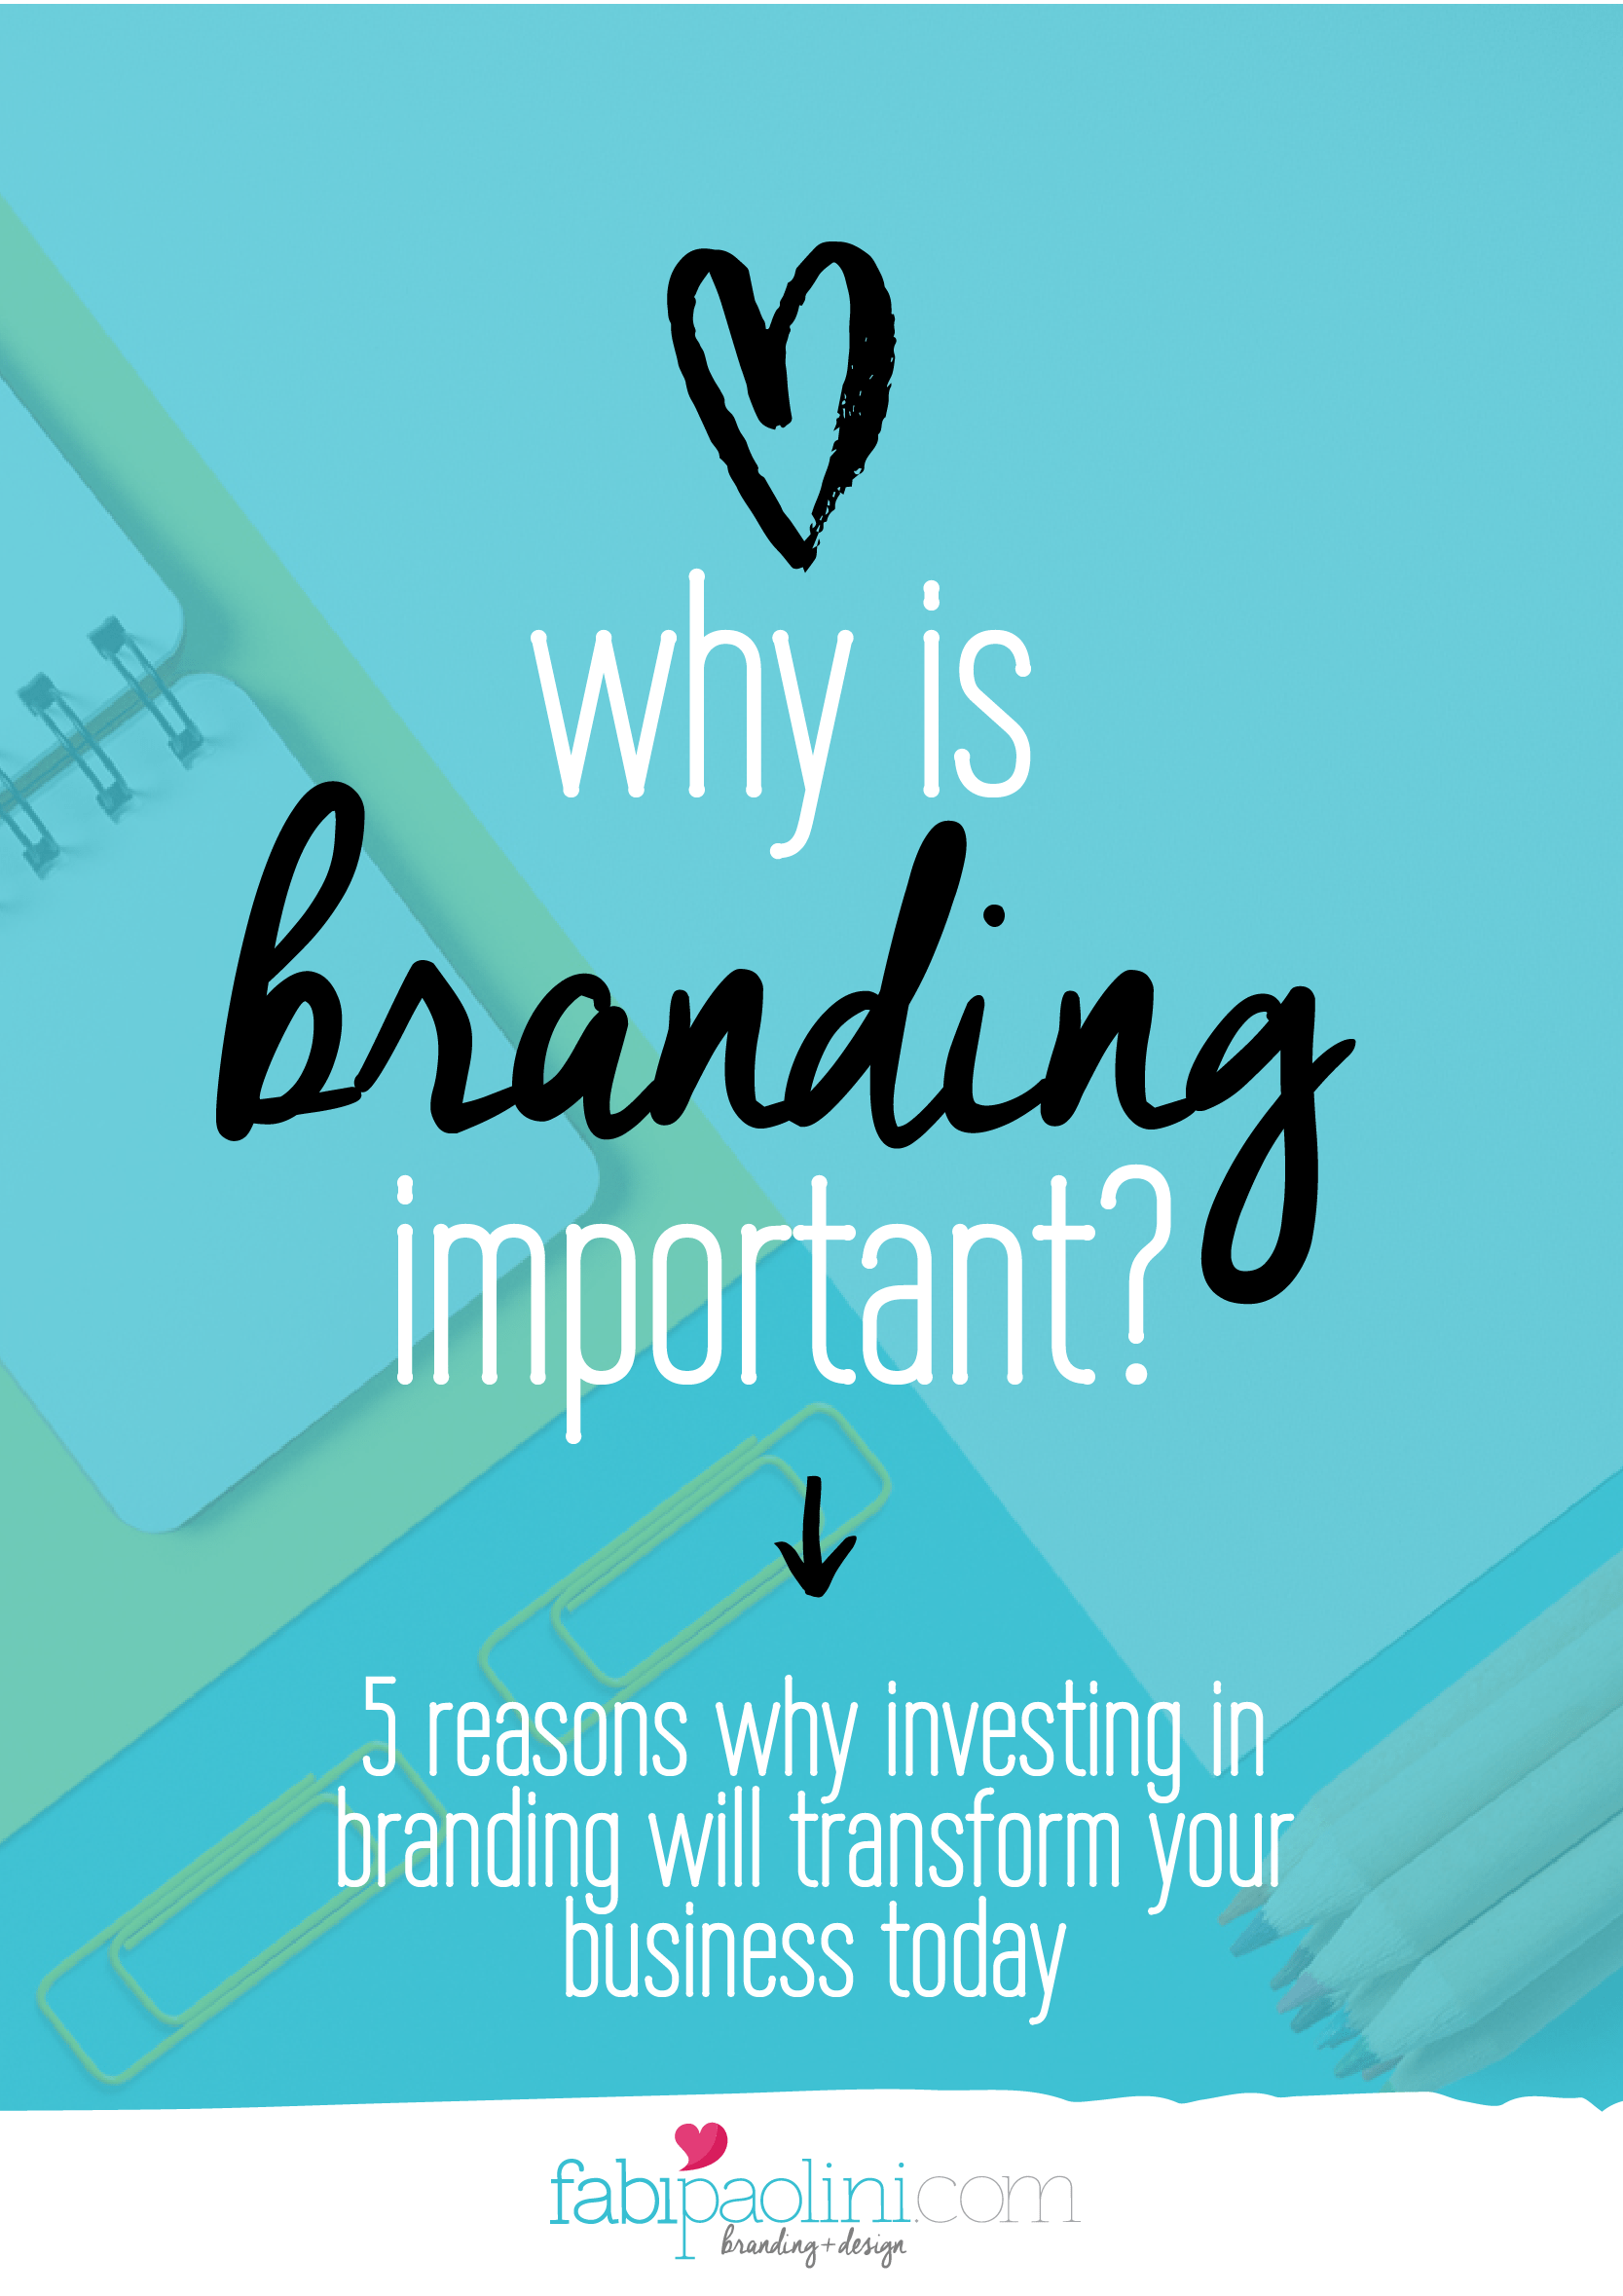 Why is Branding Important? 5 reasons why investing in branding will transform your business today. Click to read more